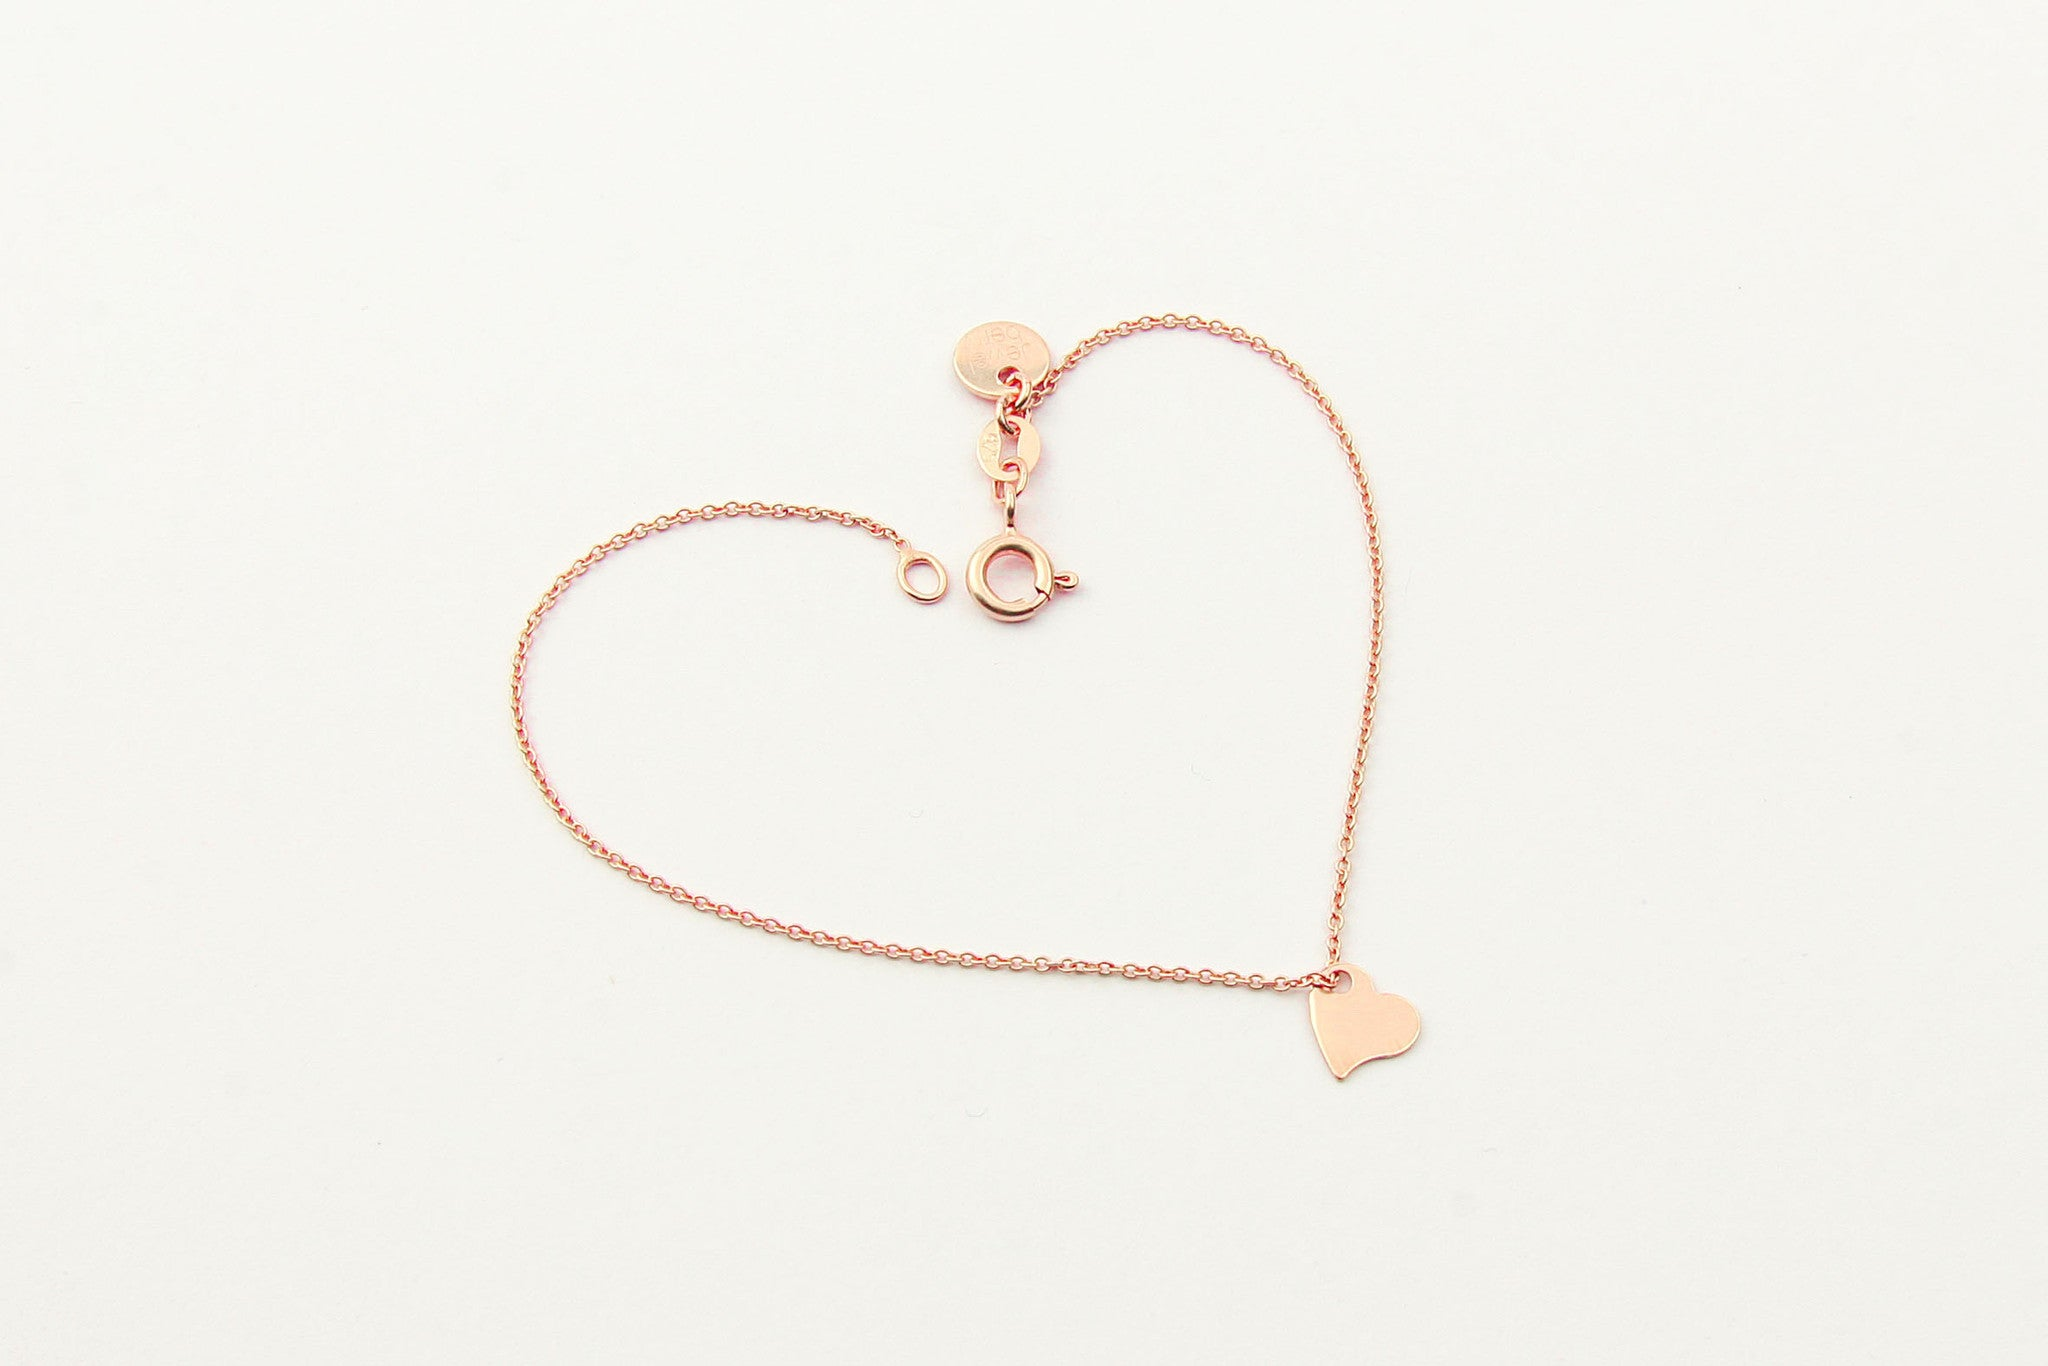 jewelberry armband bracelet my love rose gold plated sterling silver fine jewelry handmade with love fairtrade anchor chain